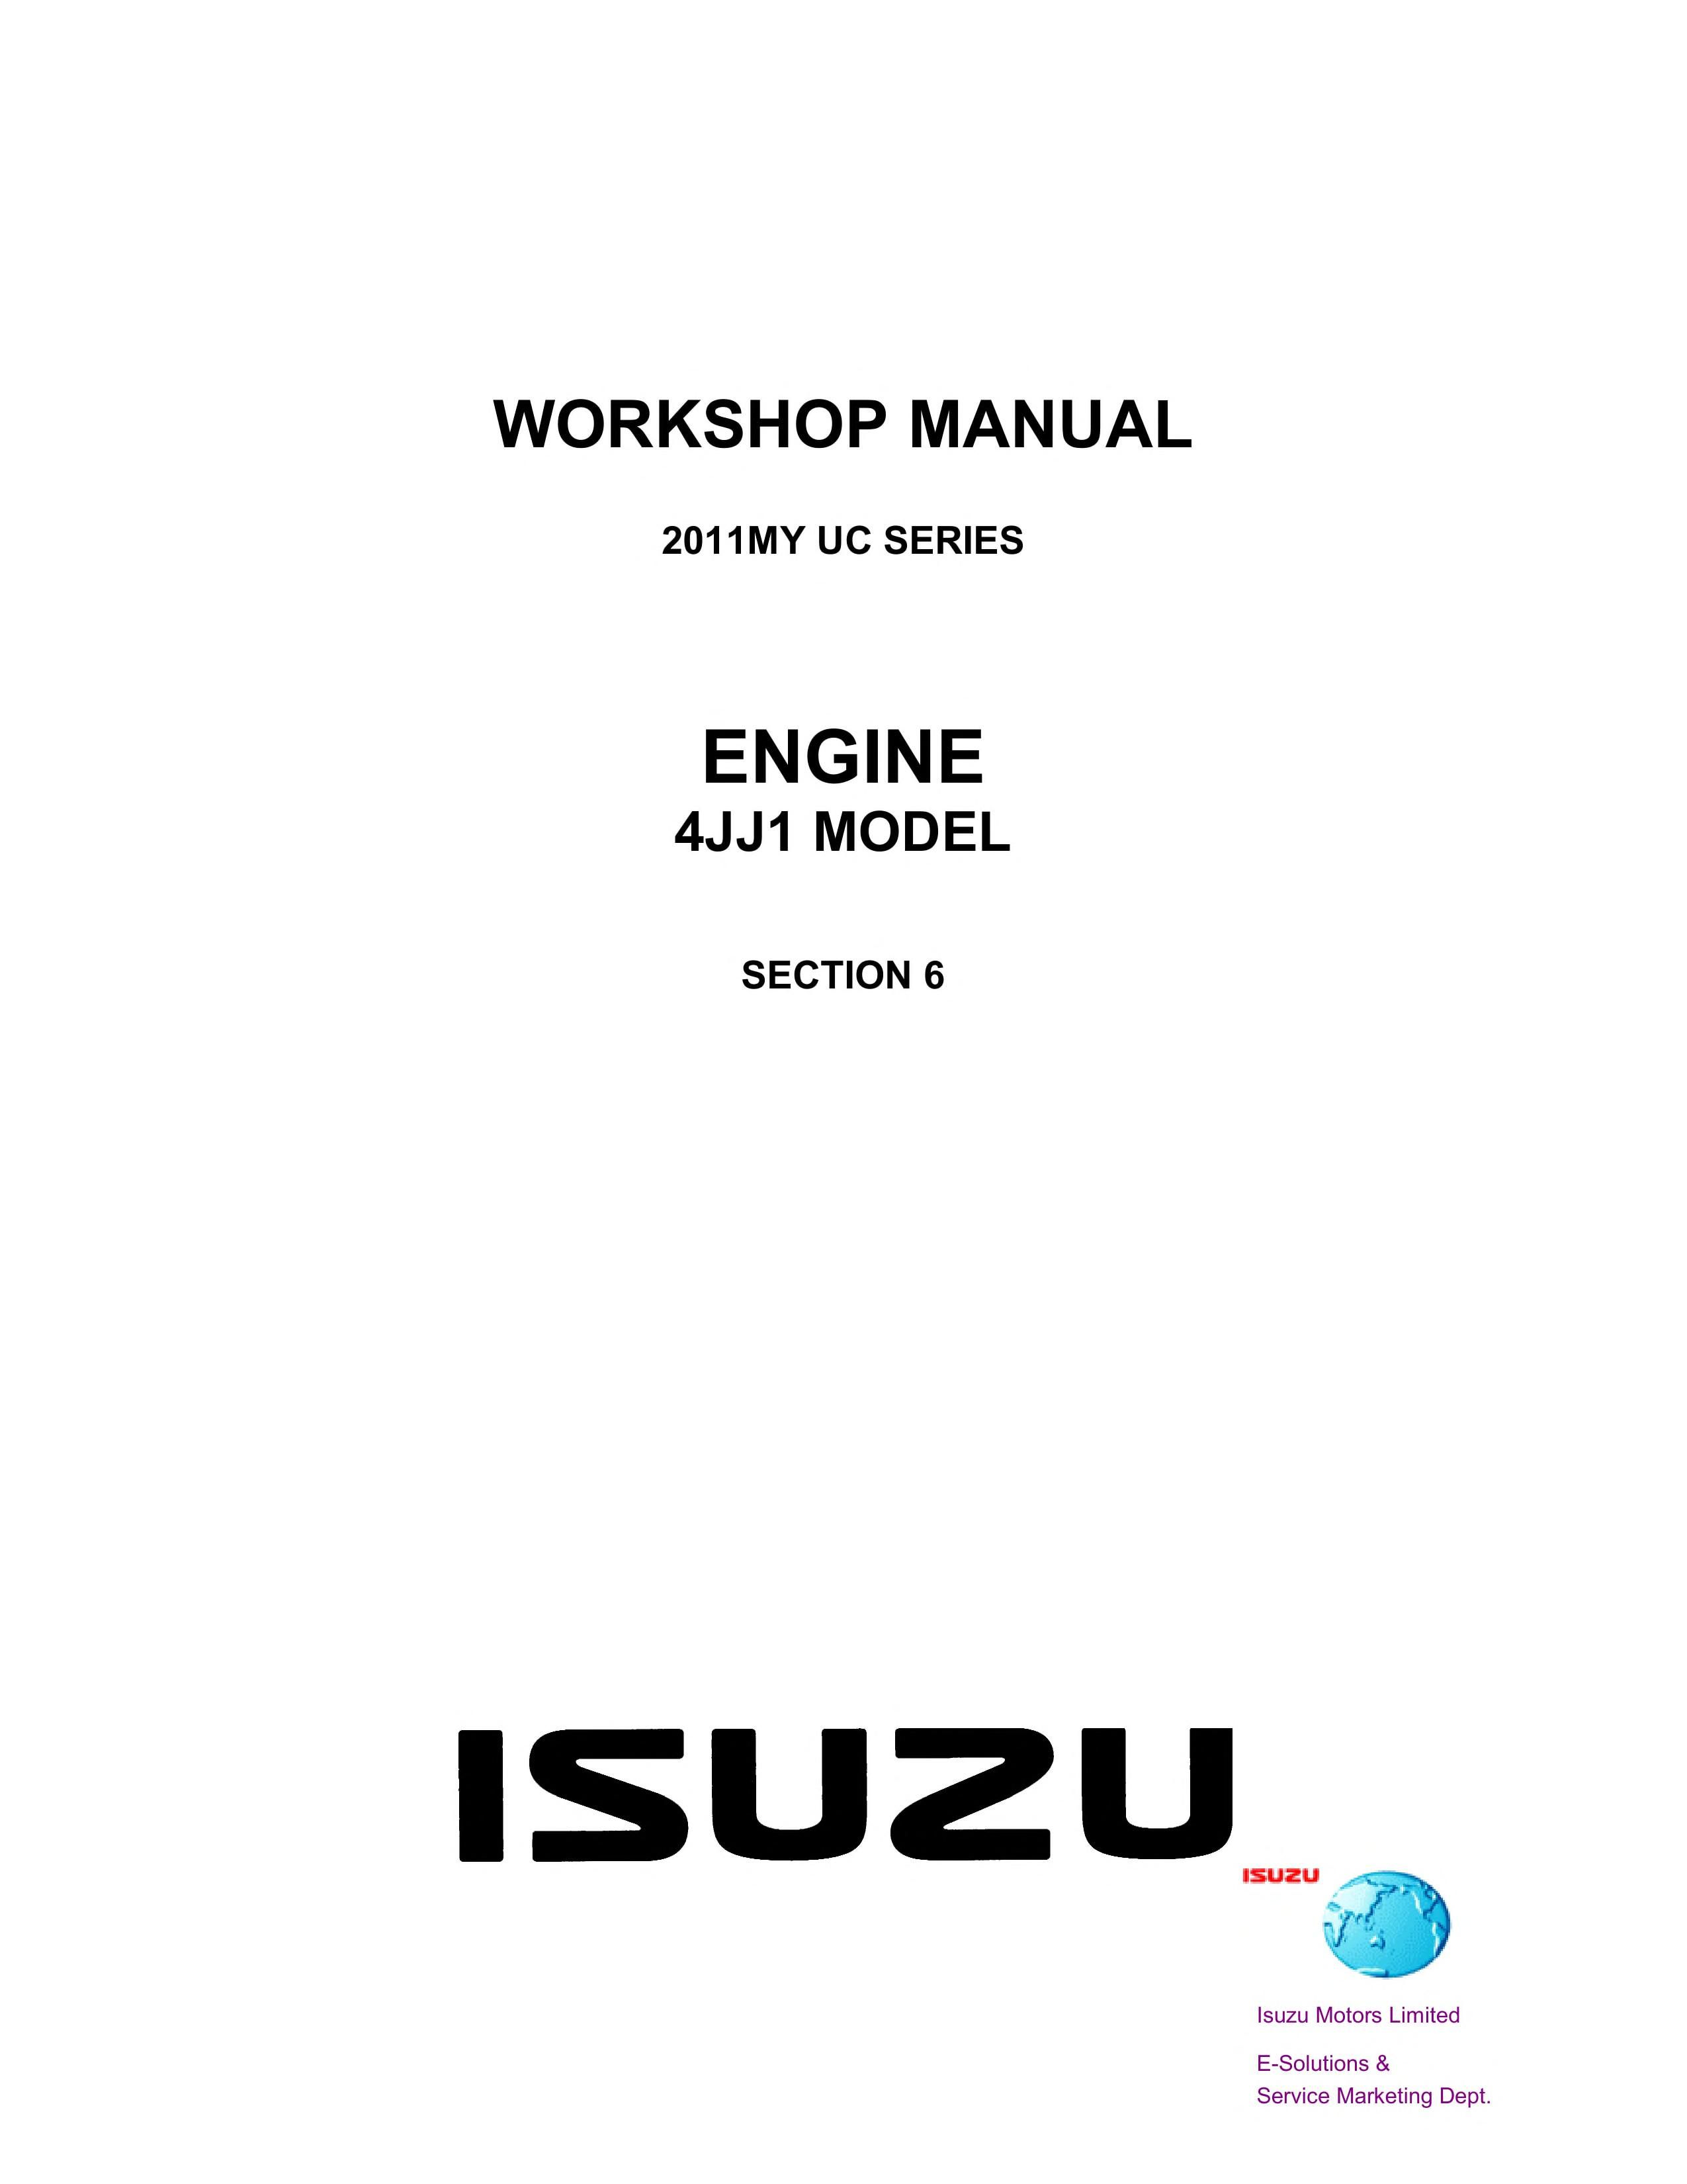 ISUZU D-MAX 2011 4JJ1 ENGINE SERVICE MANUAL.pdf (PDFy mirror) Isuzu